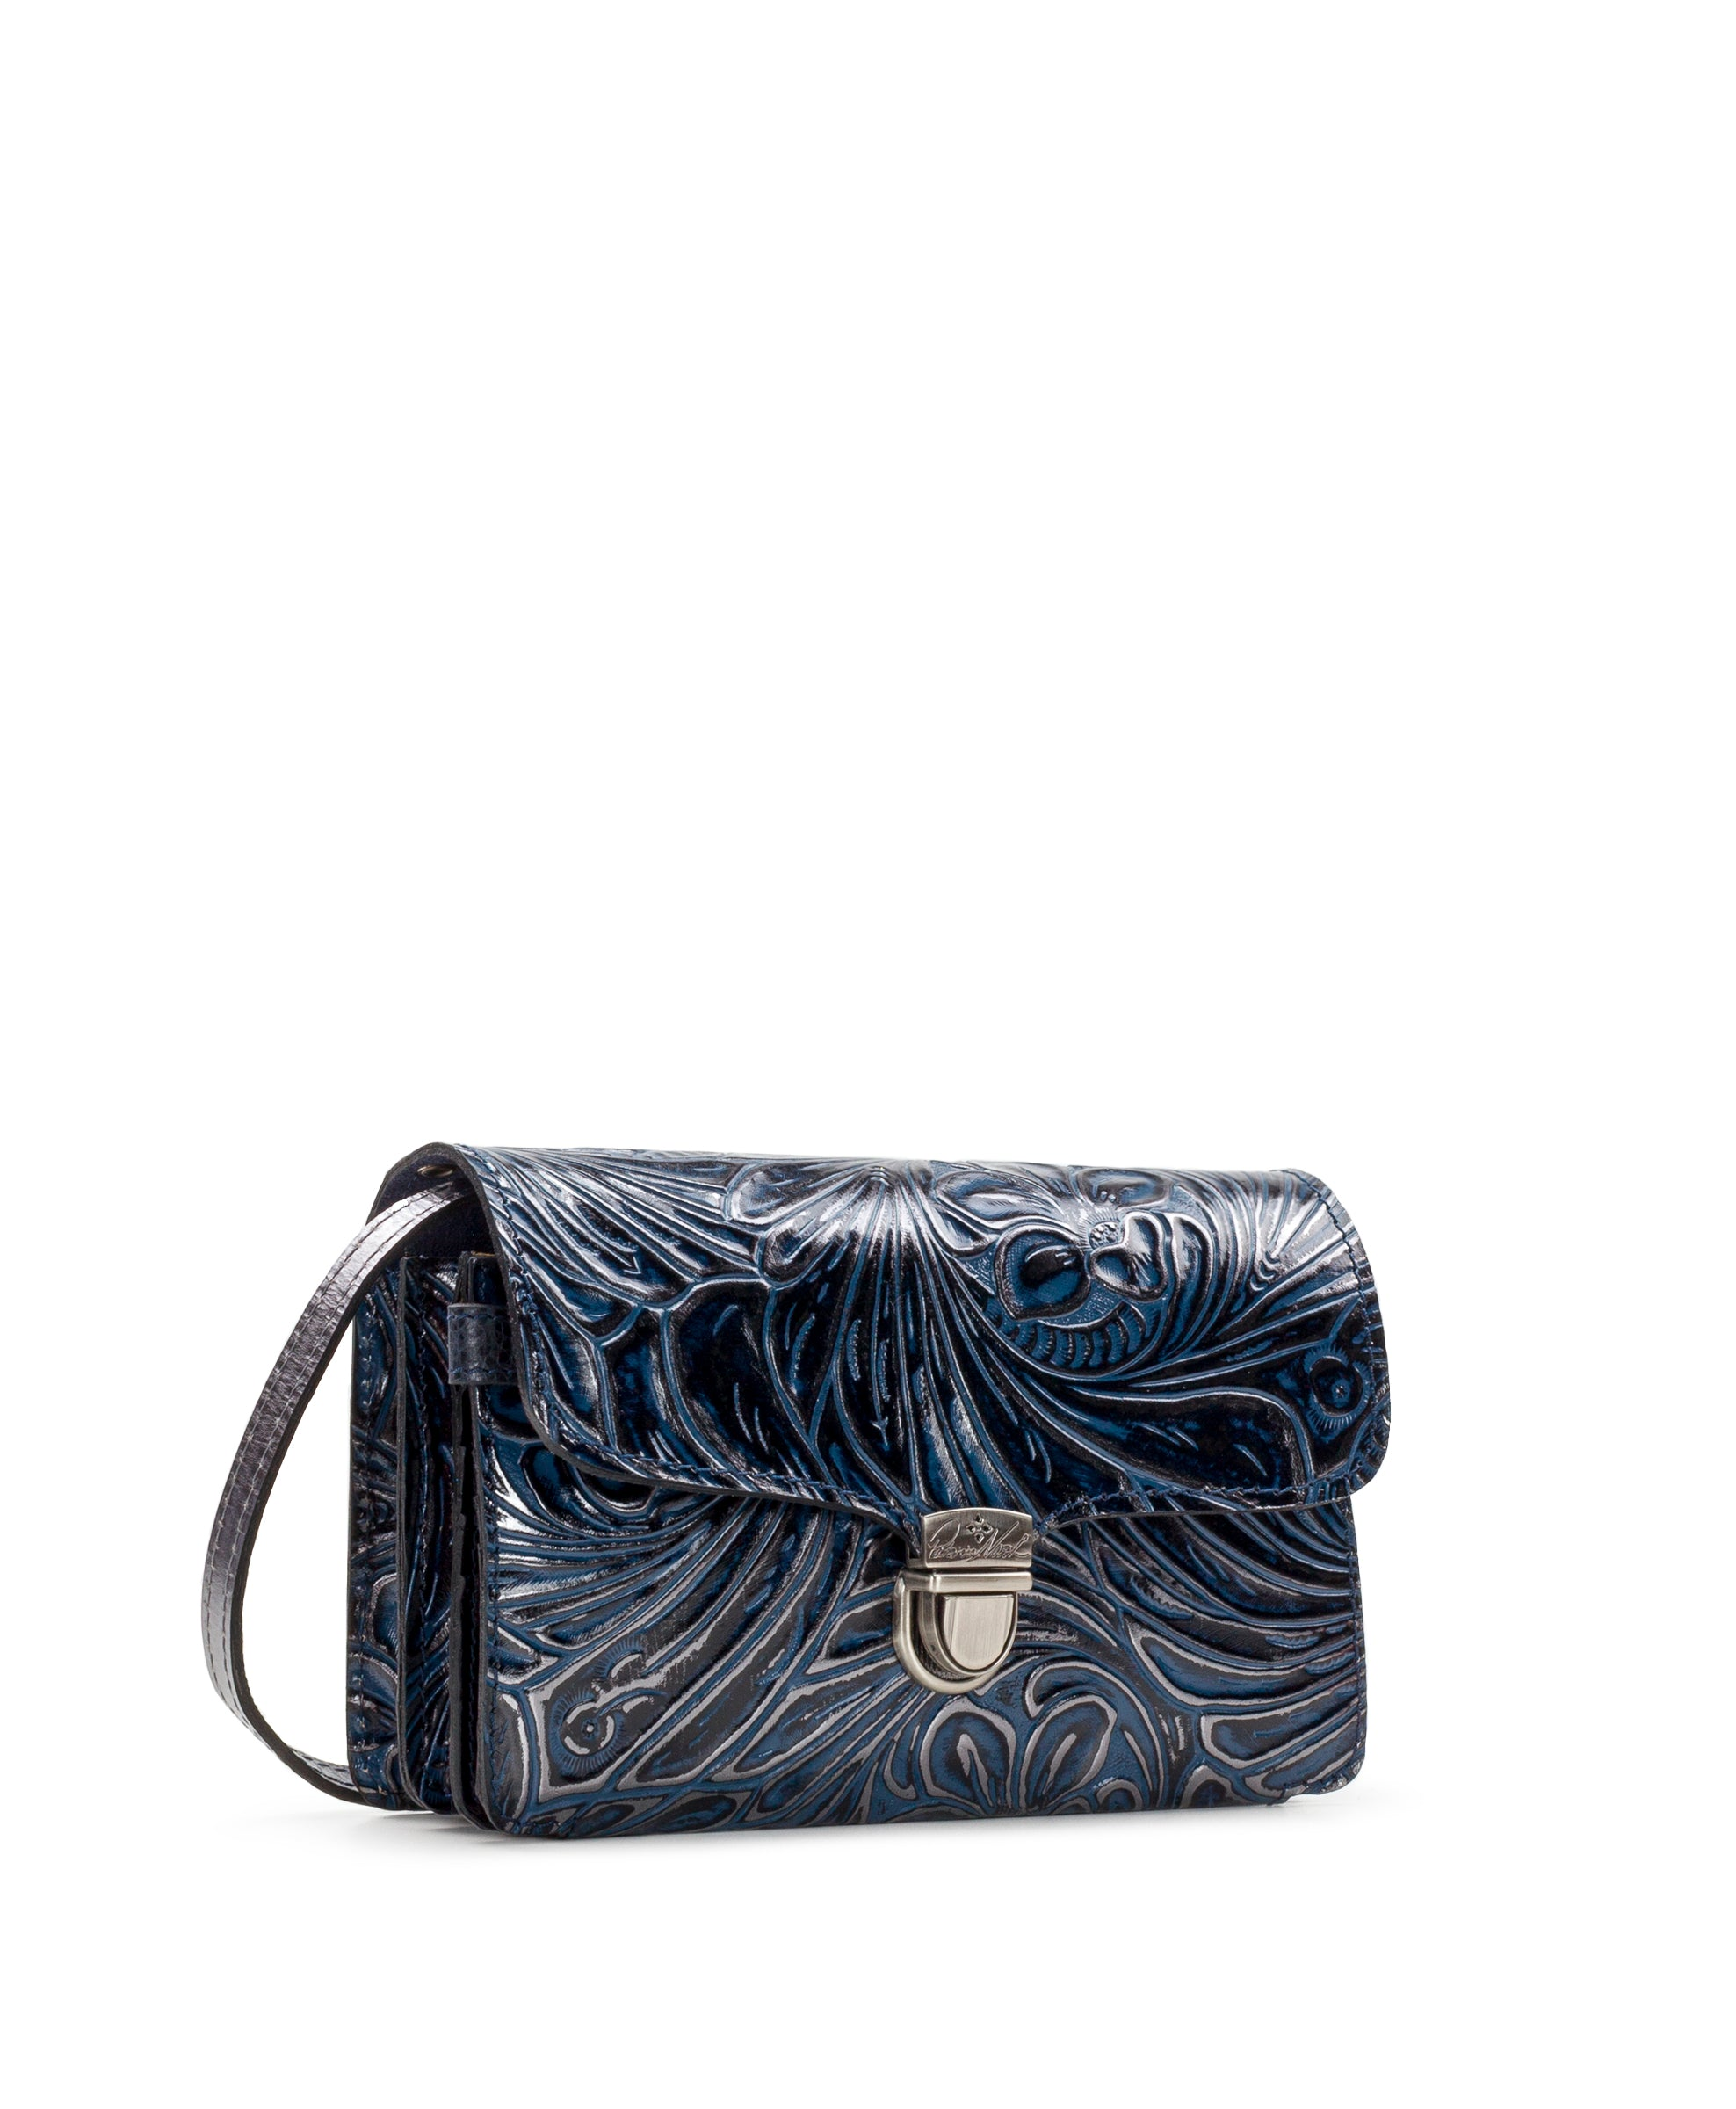 Bianco Crossbody Organizer - Metallic Tobacco Fields Navy 3